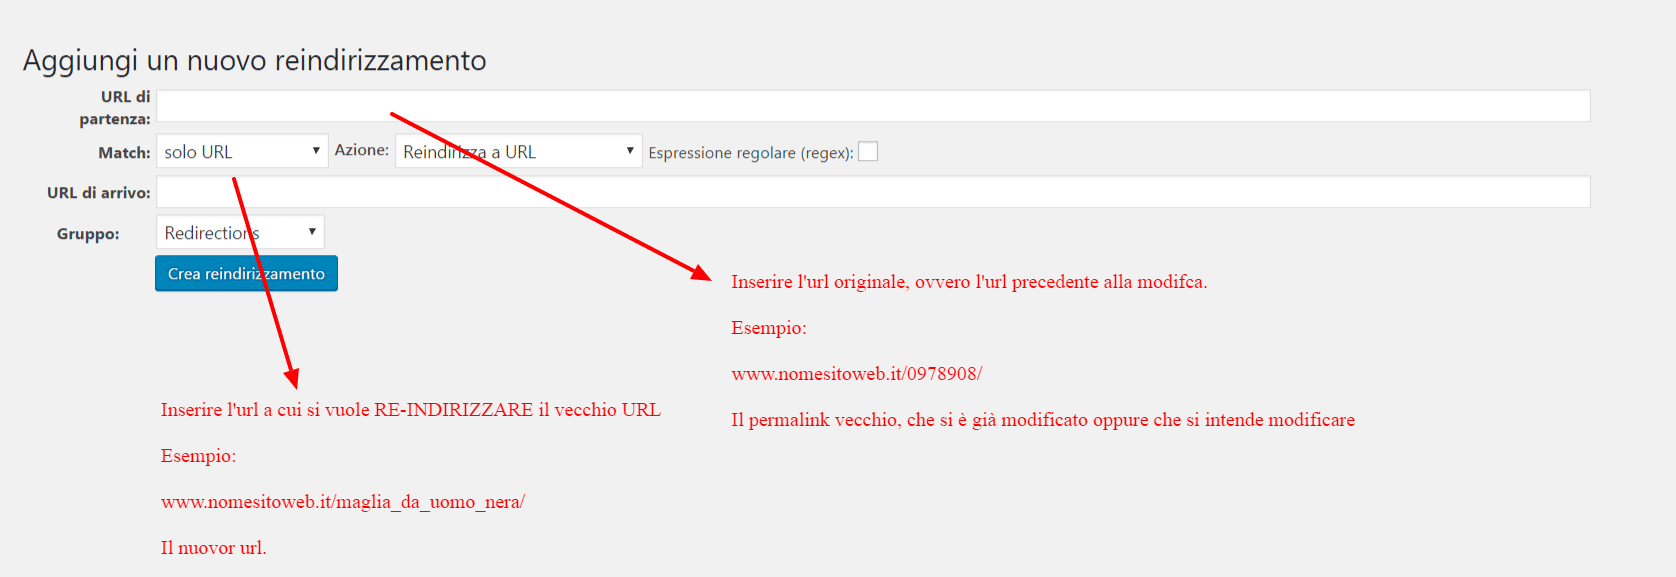 Come funziona il plugin redirection per effettuare i redirect su WP